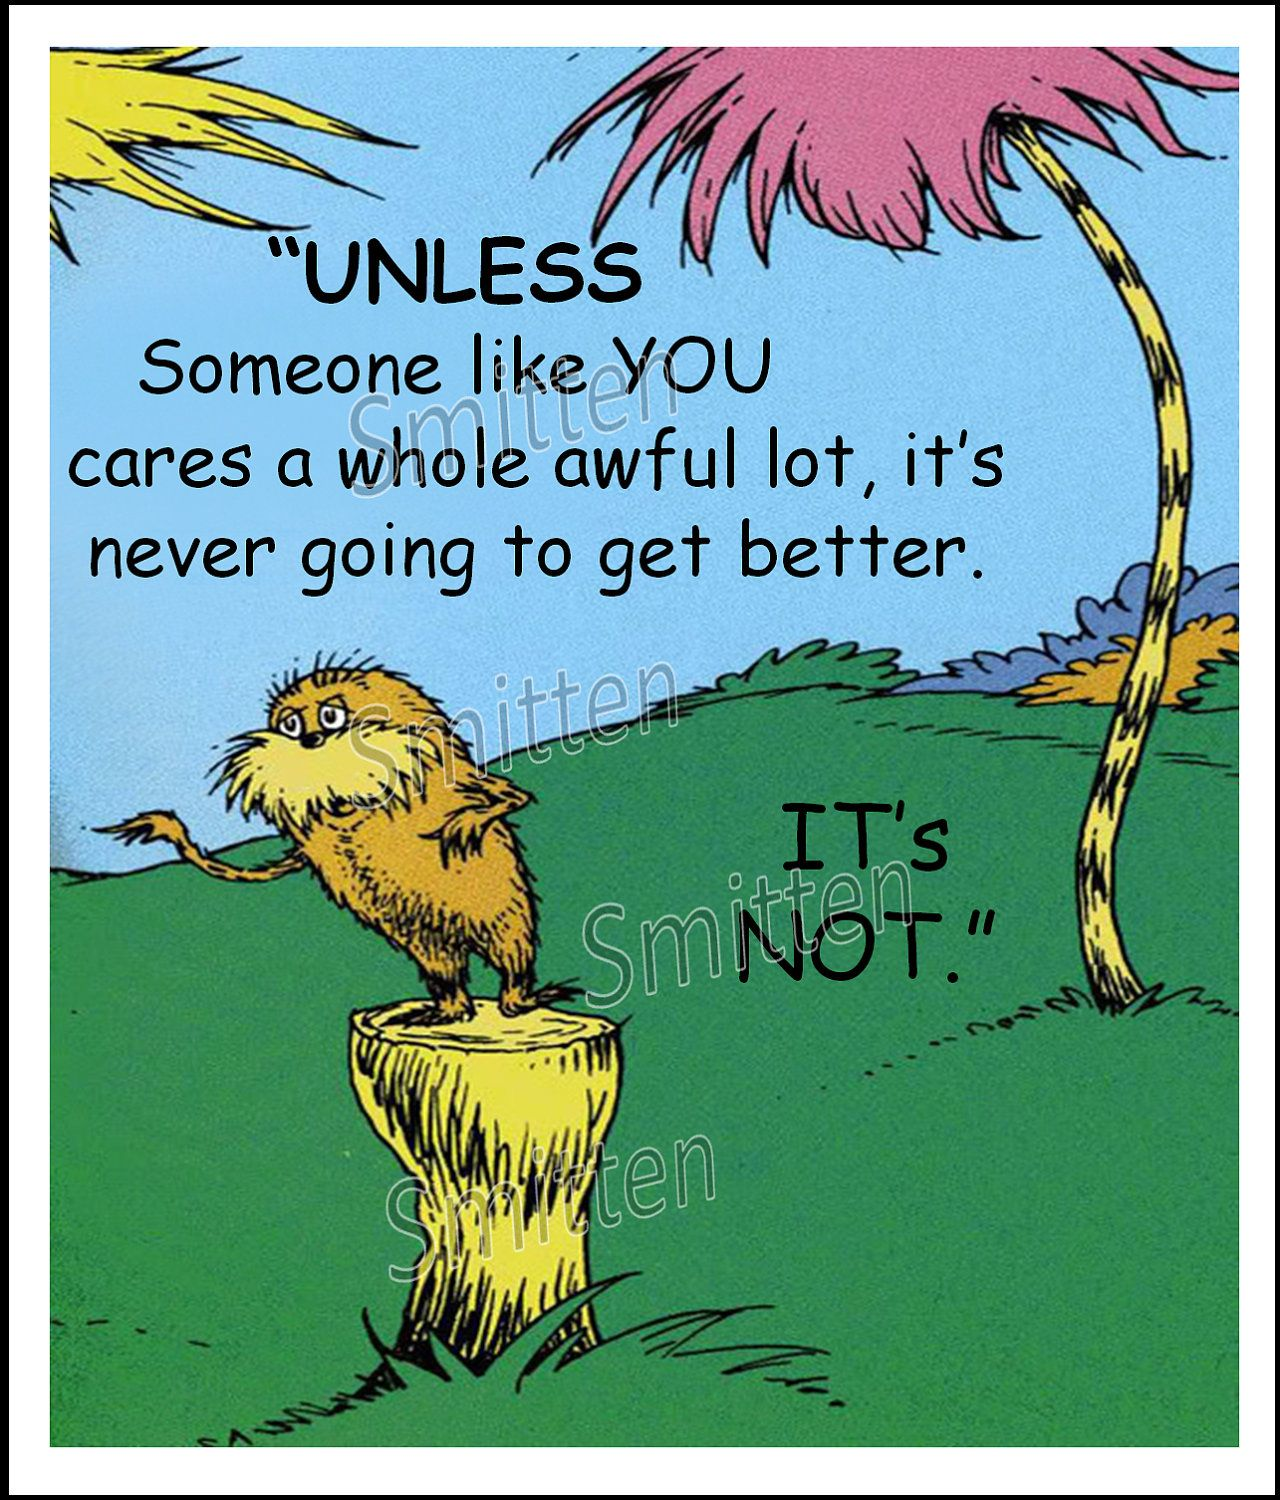 Dr Seuss The Lorax Full Movie In English: Pinterest